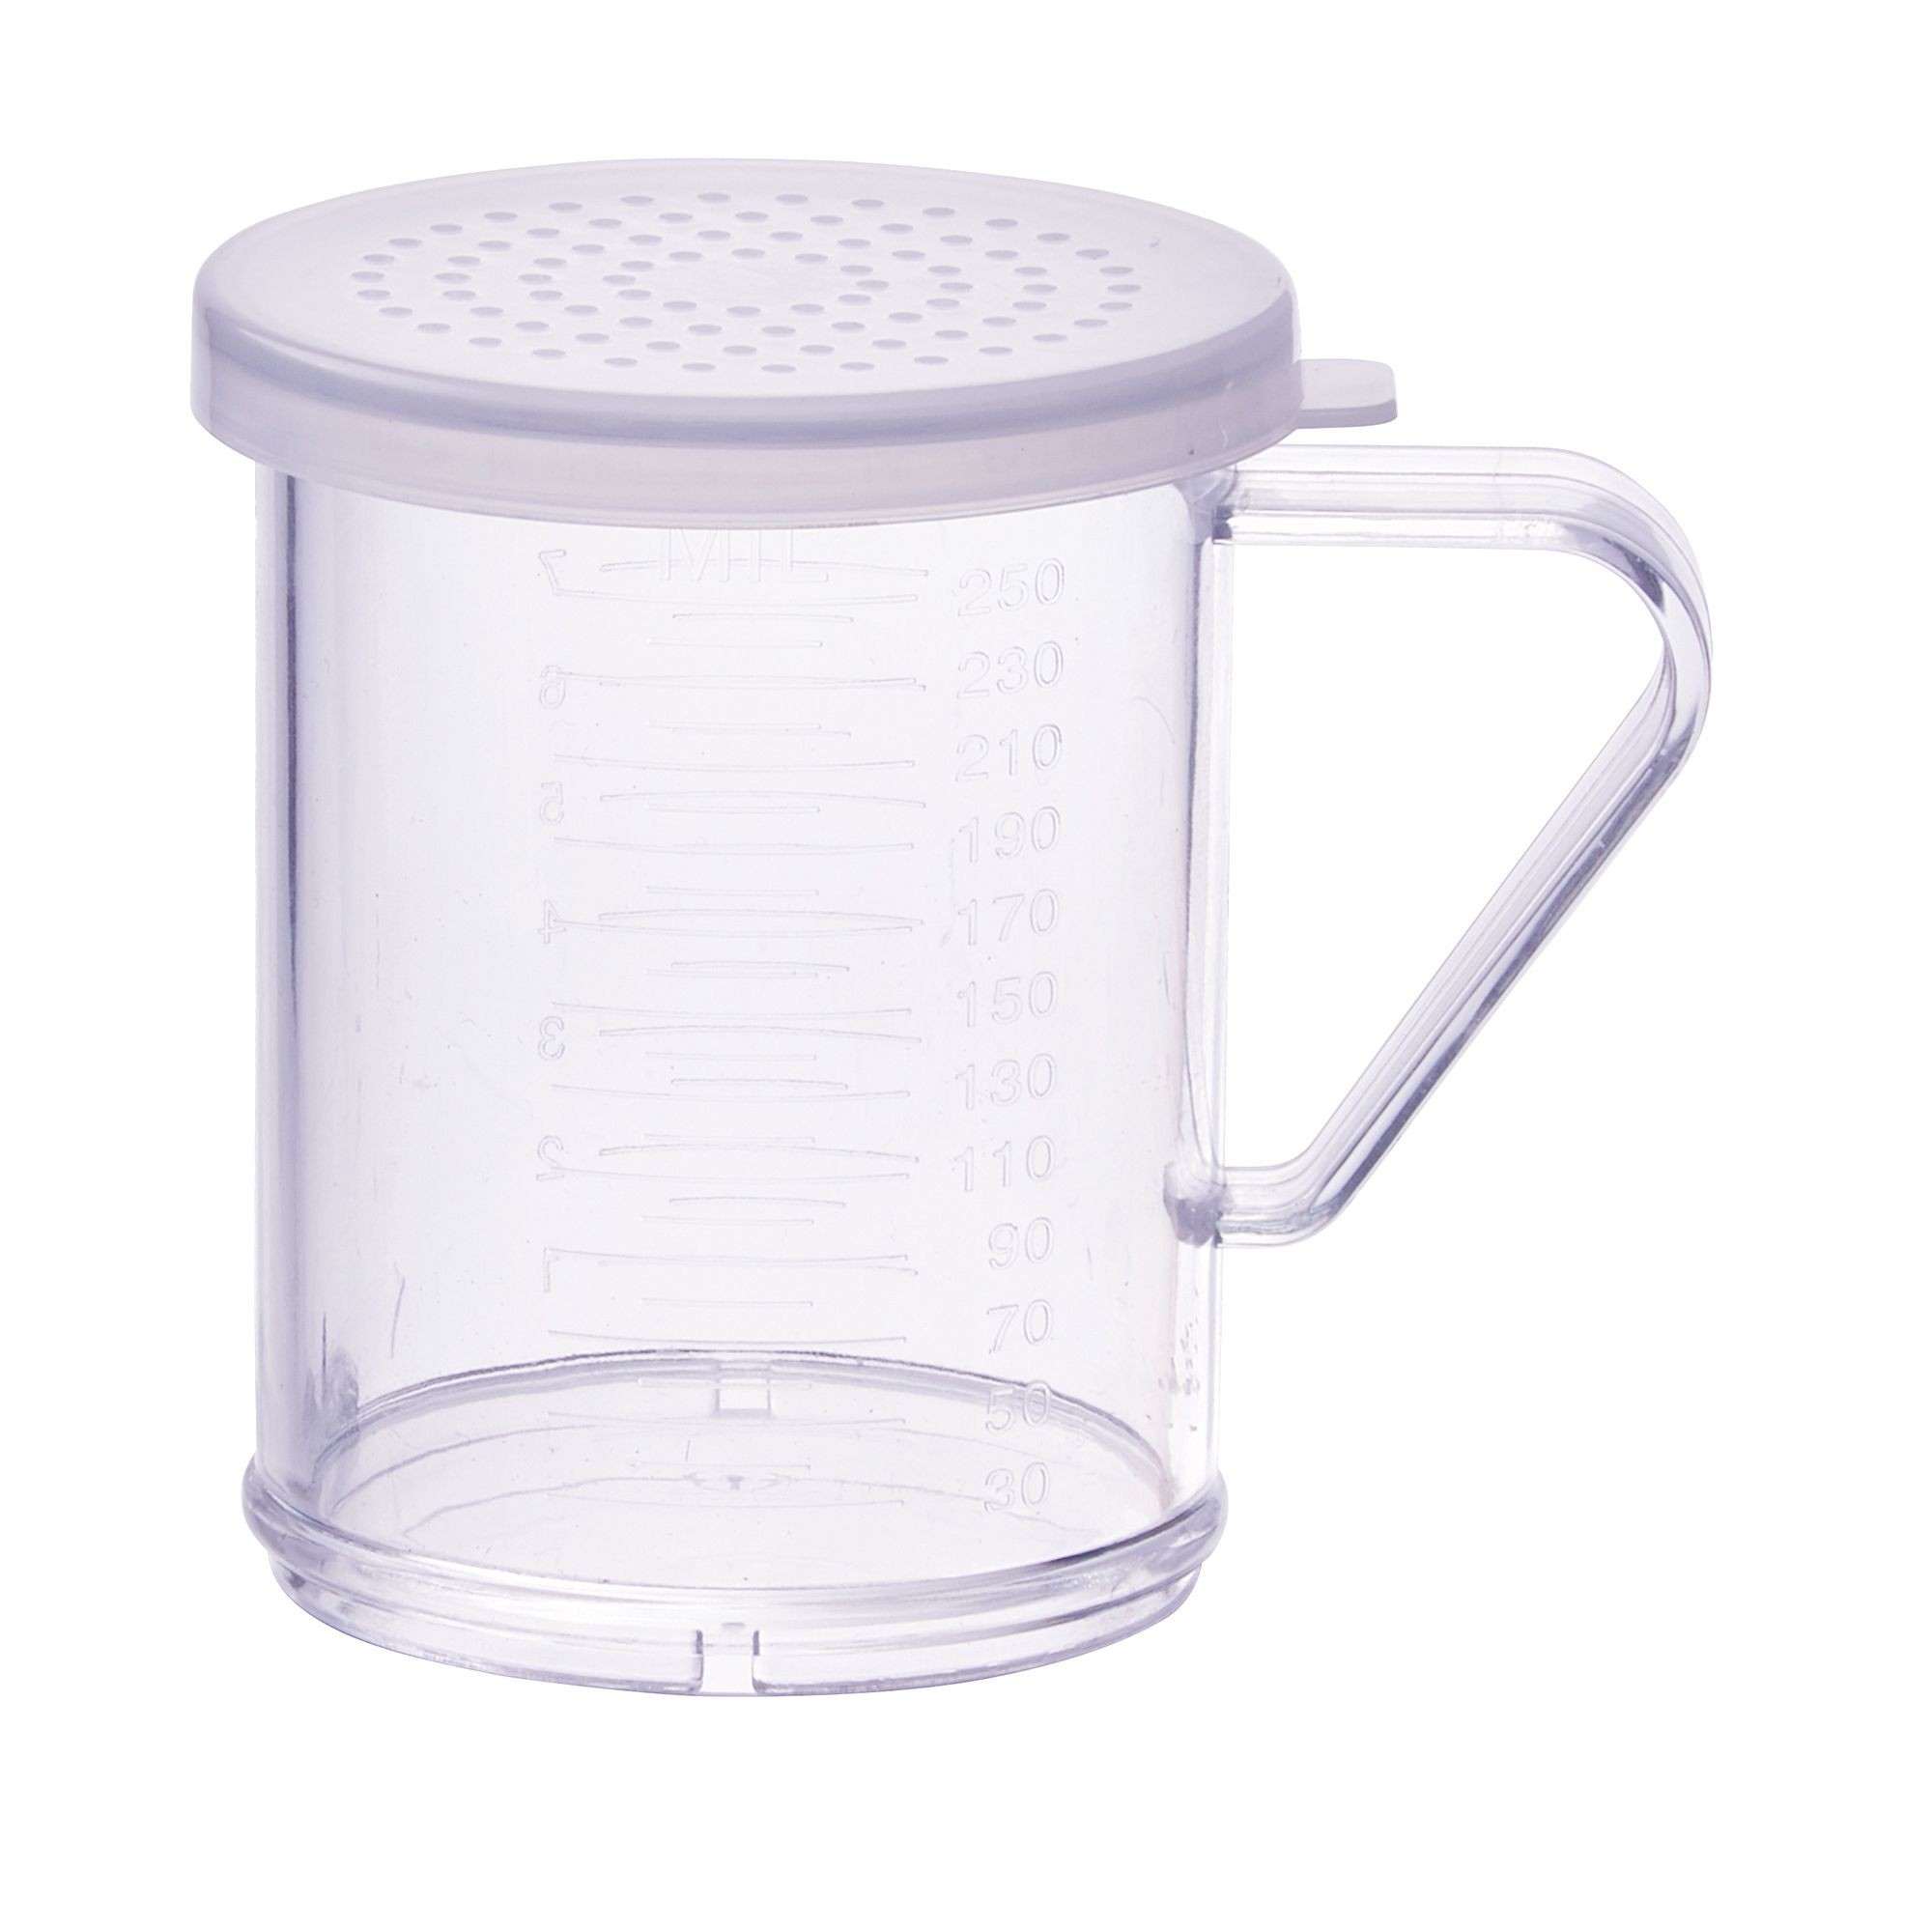 Winco PDG-10CM 10 oz. Polycarbonate Dredge with Clear Snap-On Lid, Medium Holes